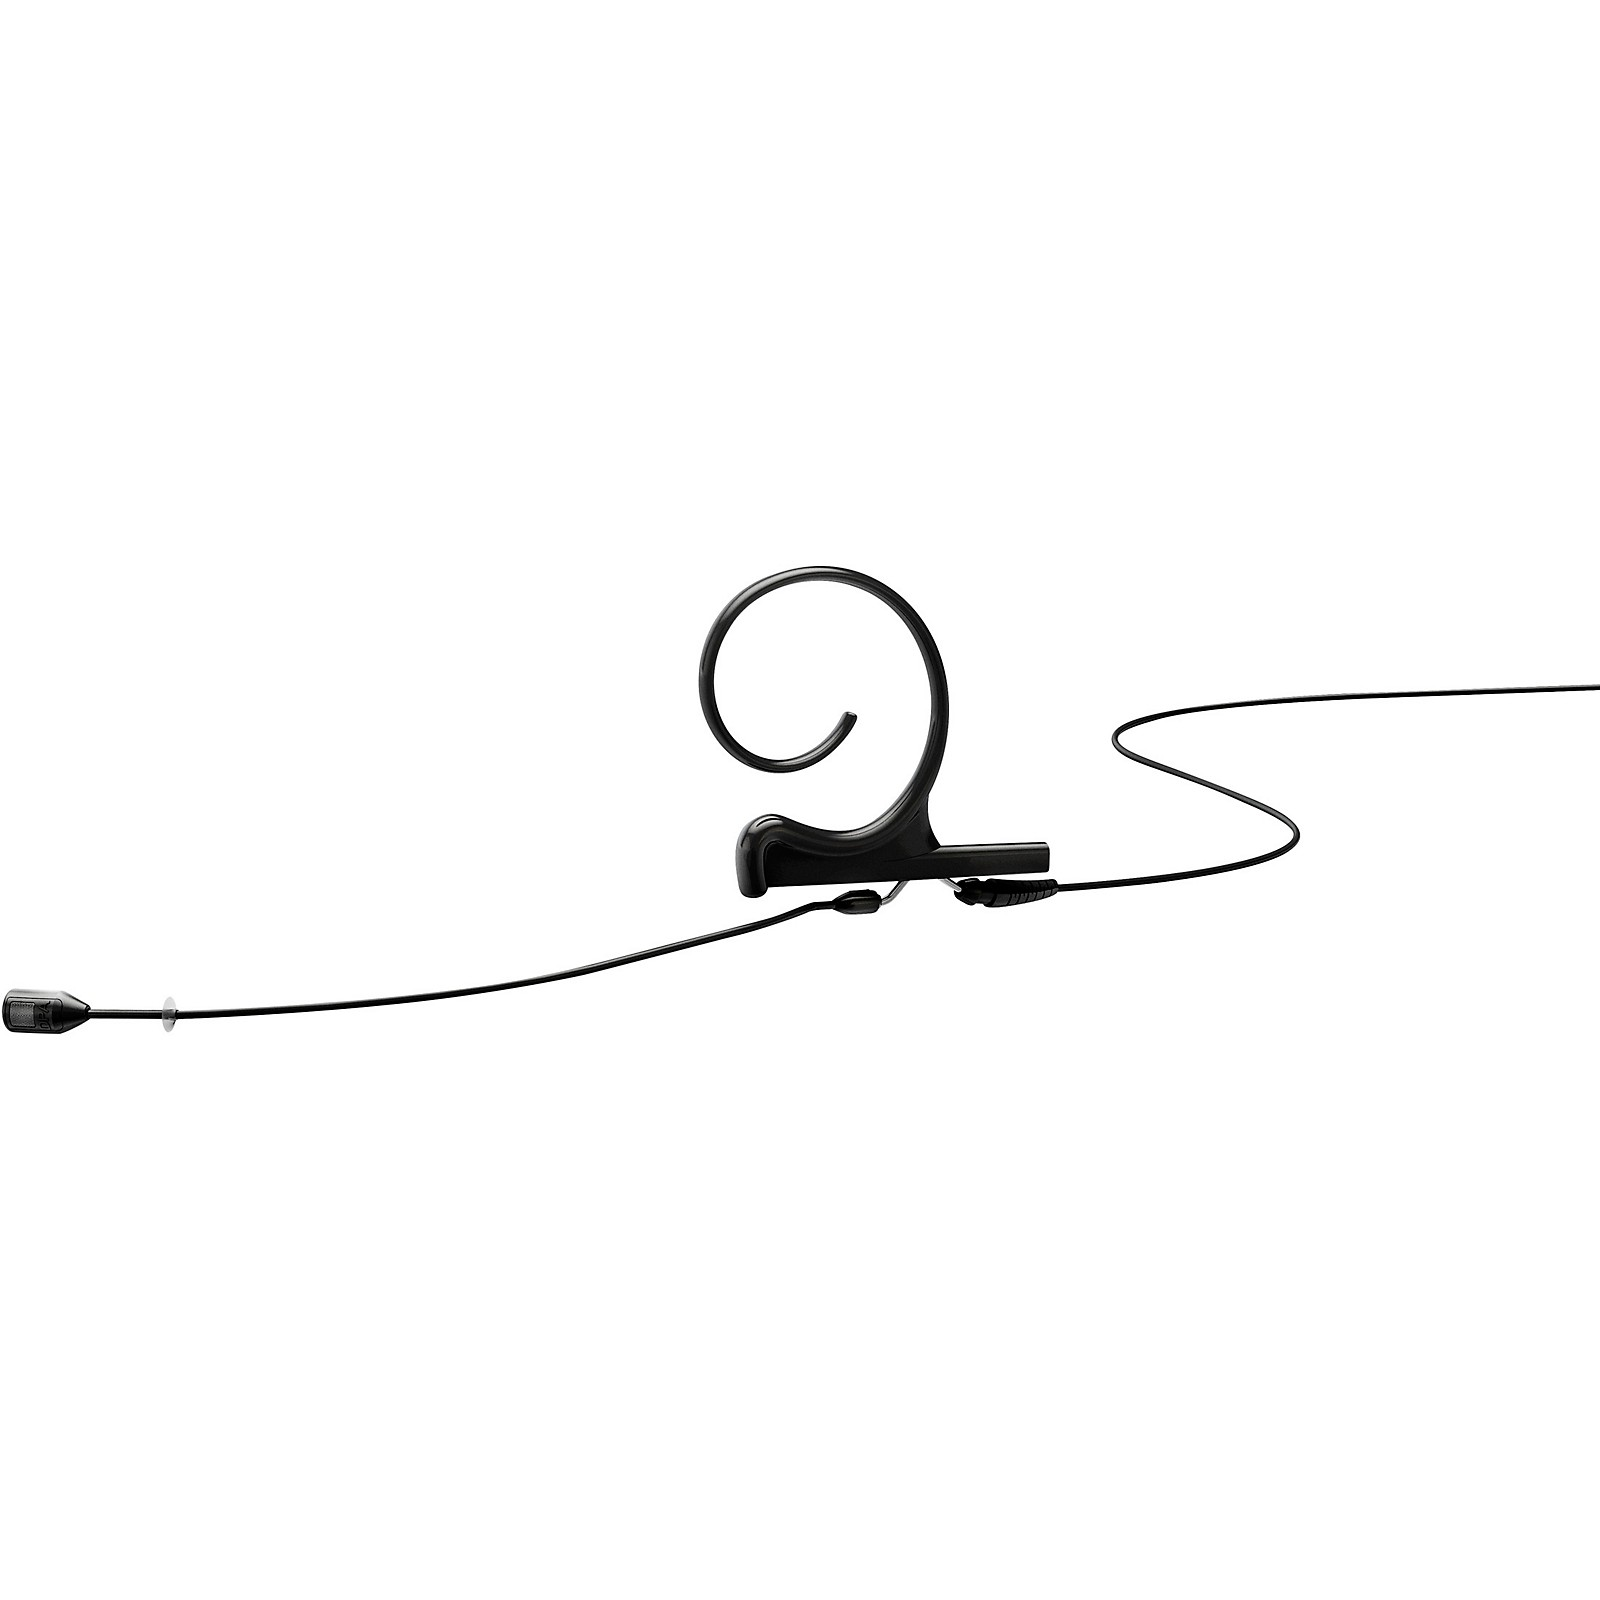 DPA Microphones d:fine FID88 Directional Headset Microphone—100mm boom length